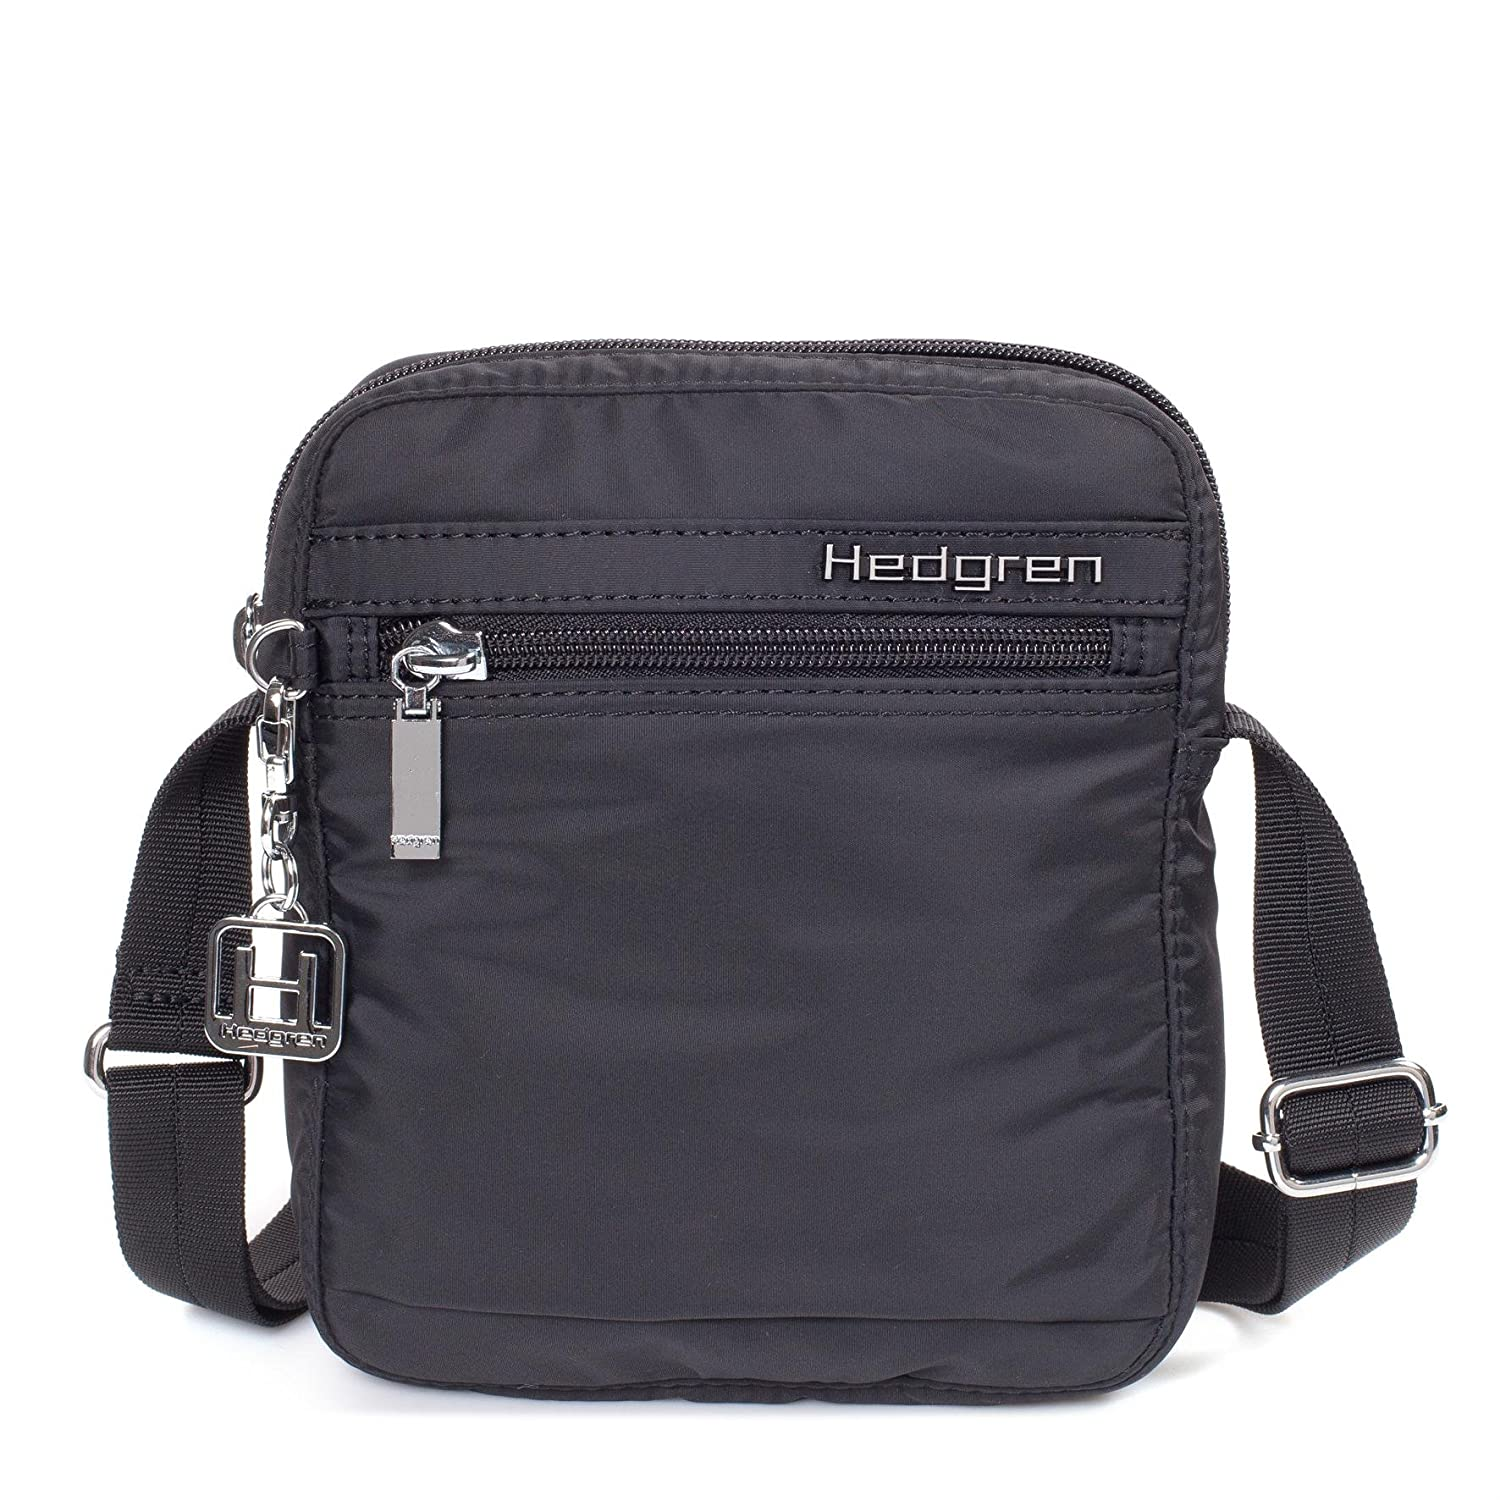 Hedgren Rush Slim Profile 6 x 2.4 x 8 Inches Womens 3 Zip Pocket Crossbody Bag Black